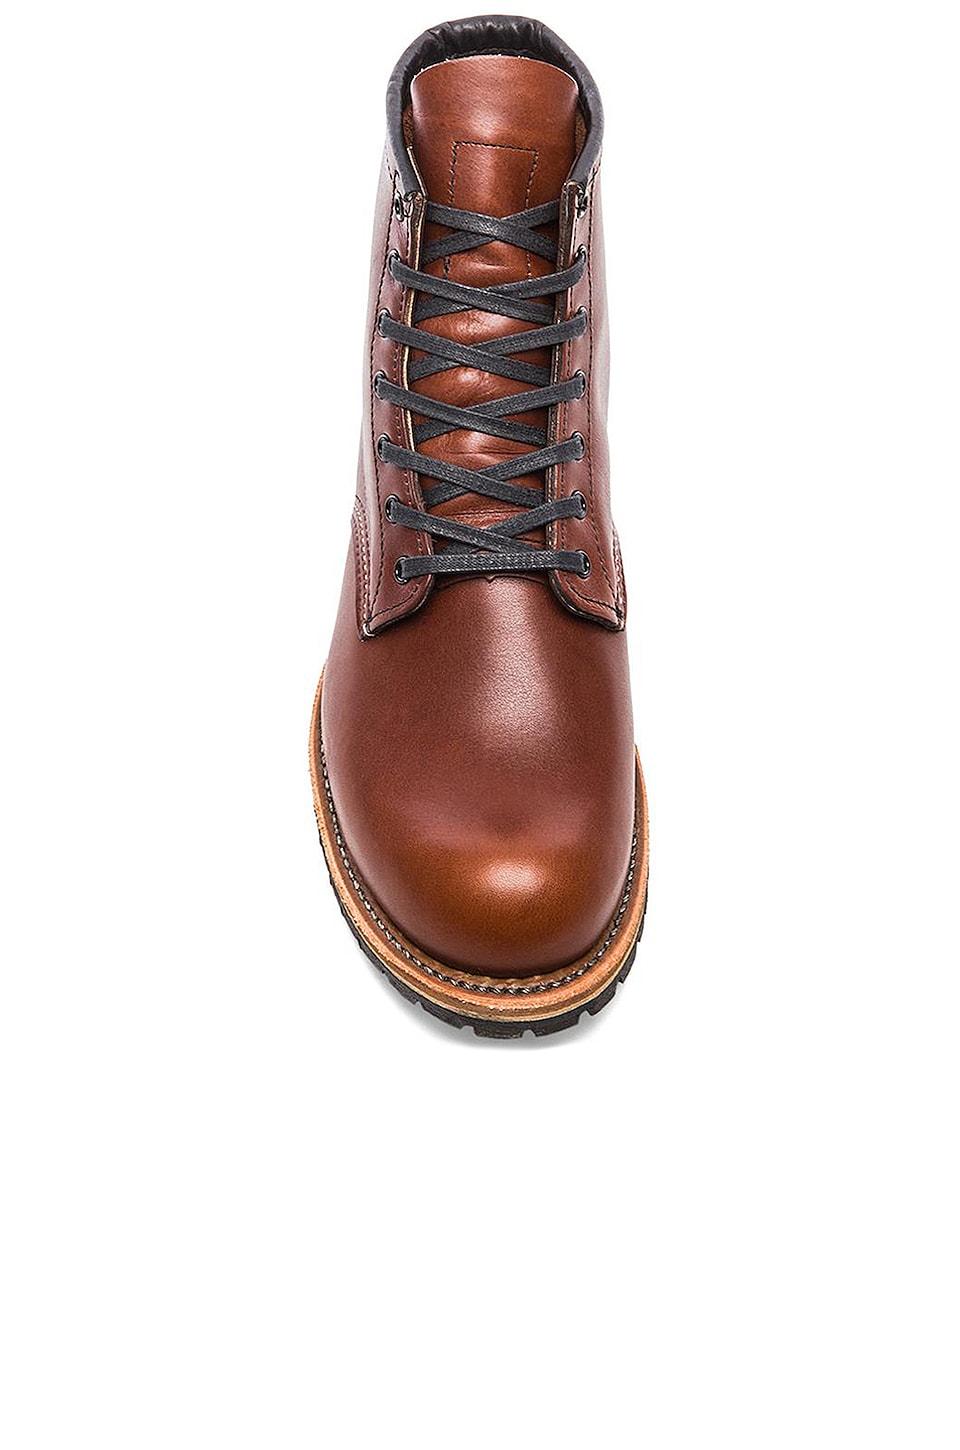 "Red Wing Shoes Beckman 6"" Classic Round in Cigar Featherstone"